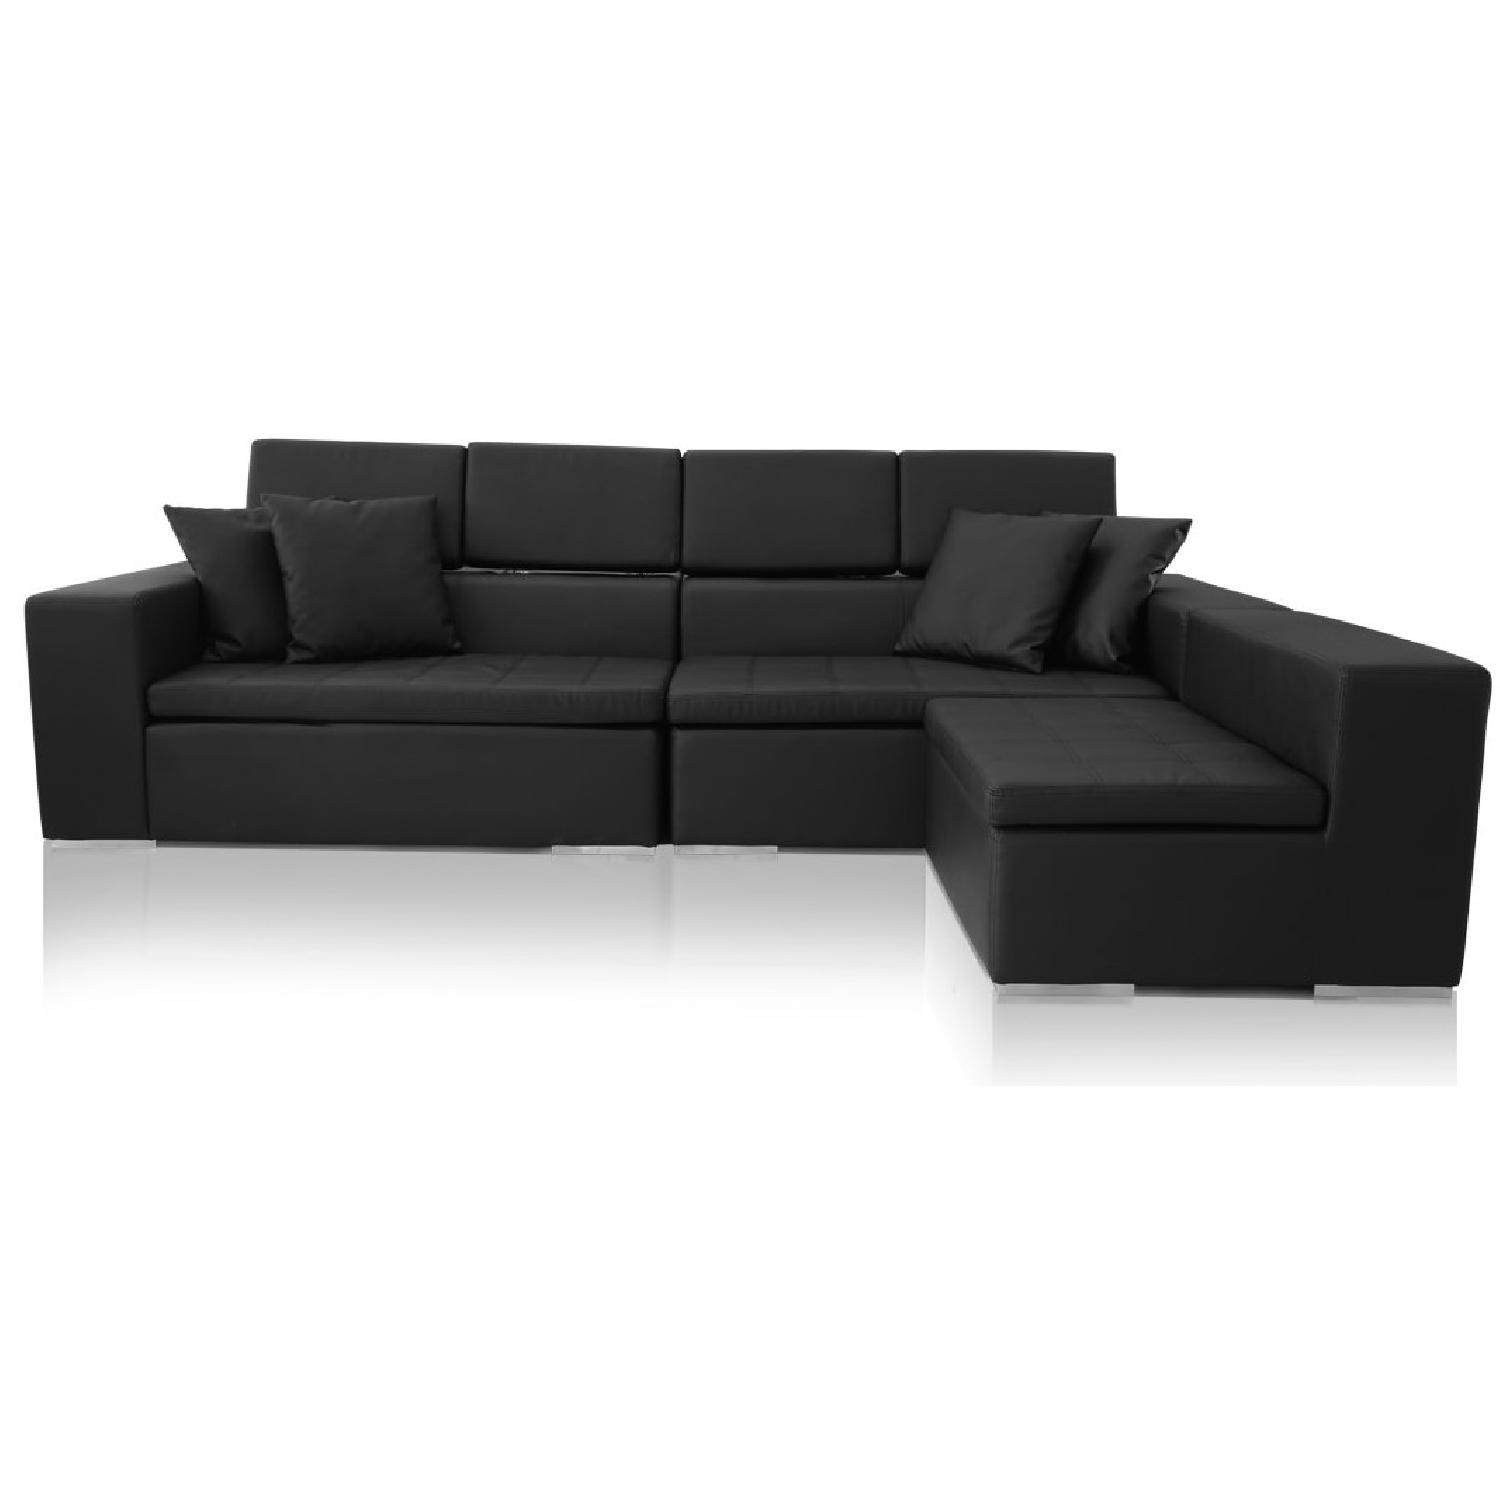 Monaco Leather Modern Sectional Sofa in Black - image-3